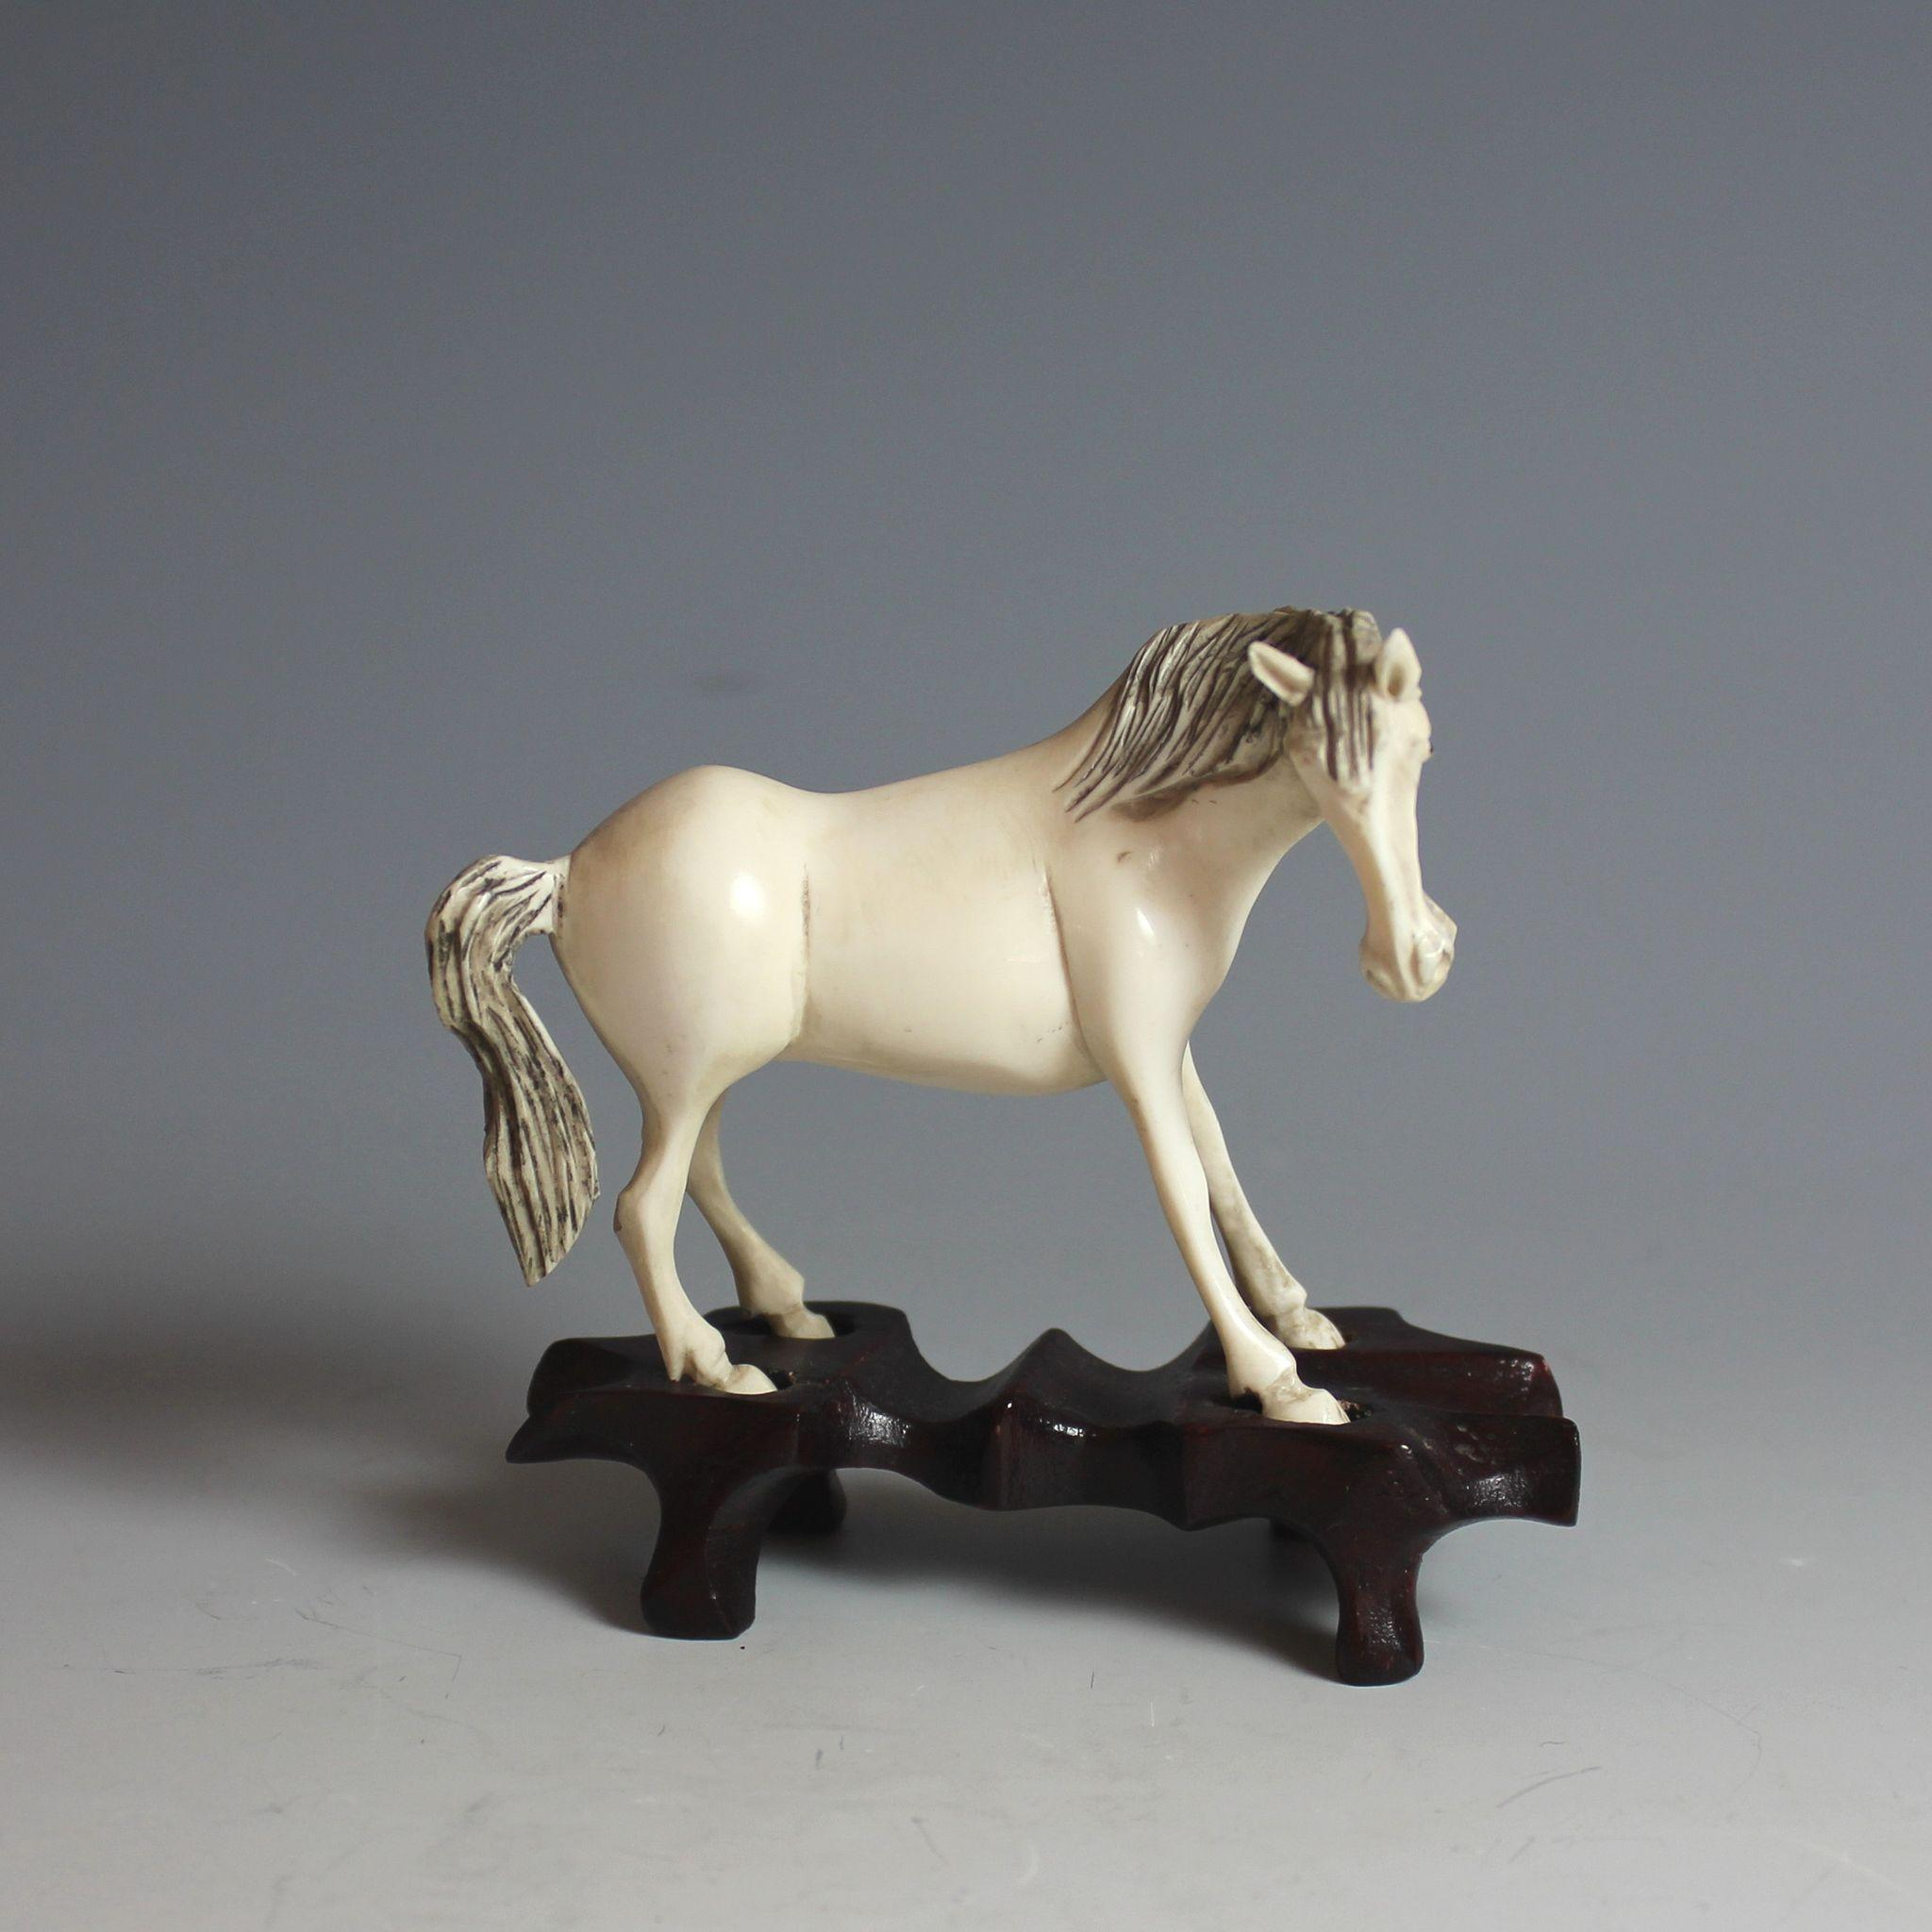 Vintage Chinese Carved Sculpture of a Horse with Fitted Stand